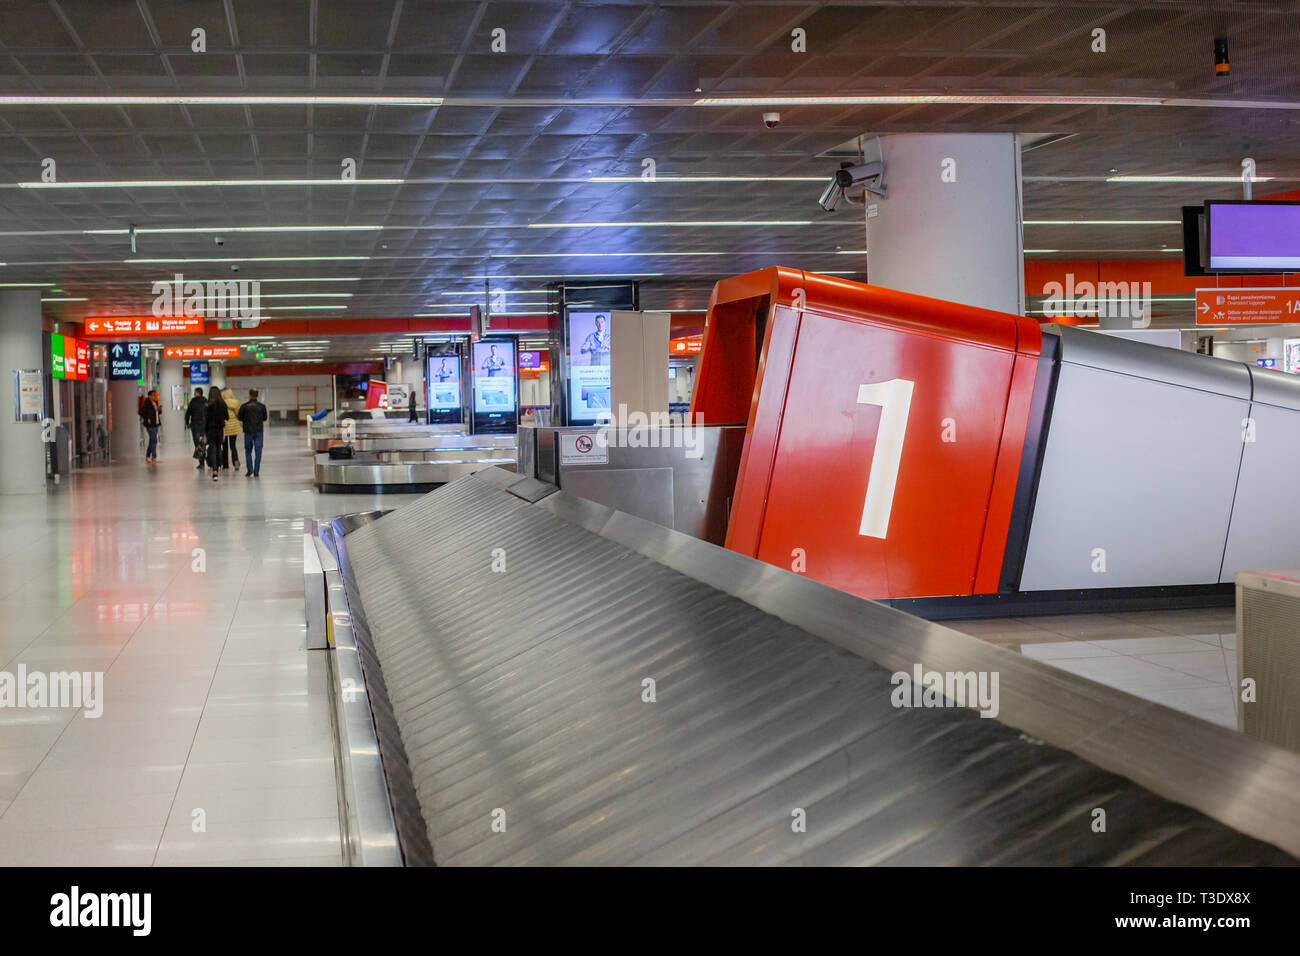 Scanner for baggage inspection. Empty tape to move hand luggage when scanning at the customs at the airport. - Stock Image